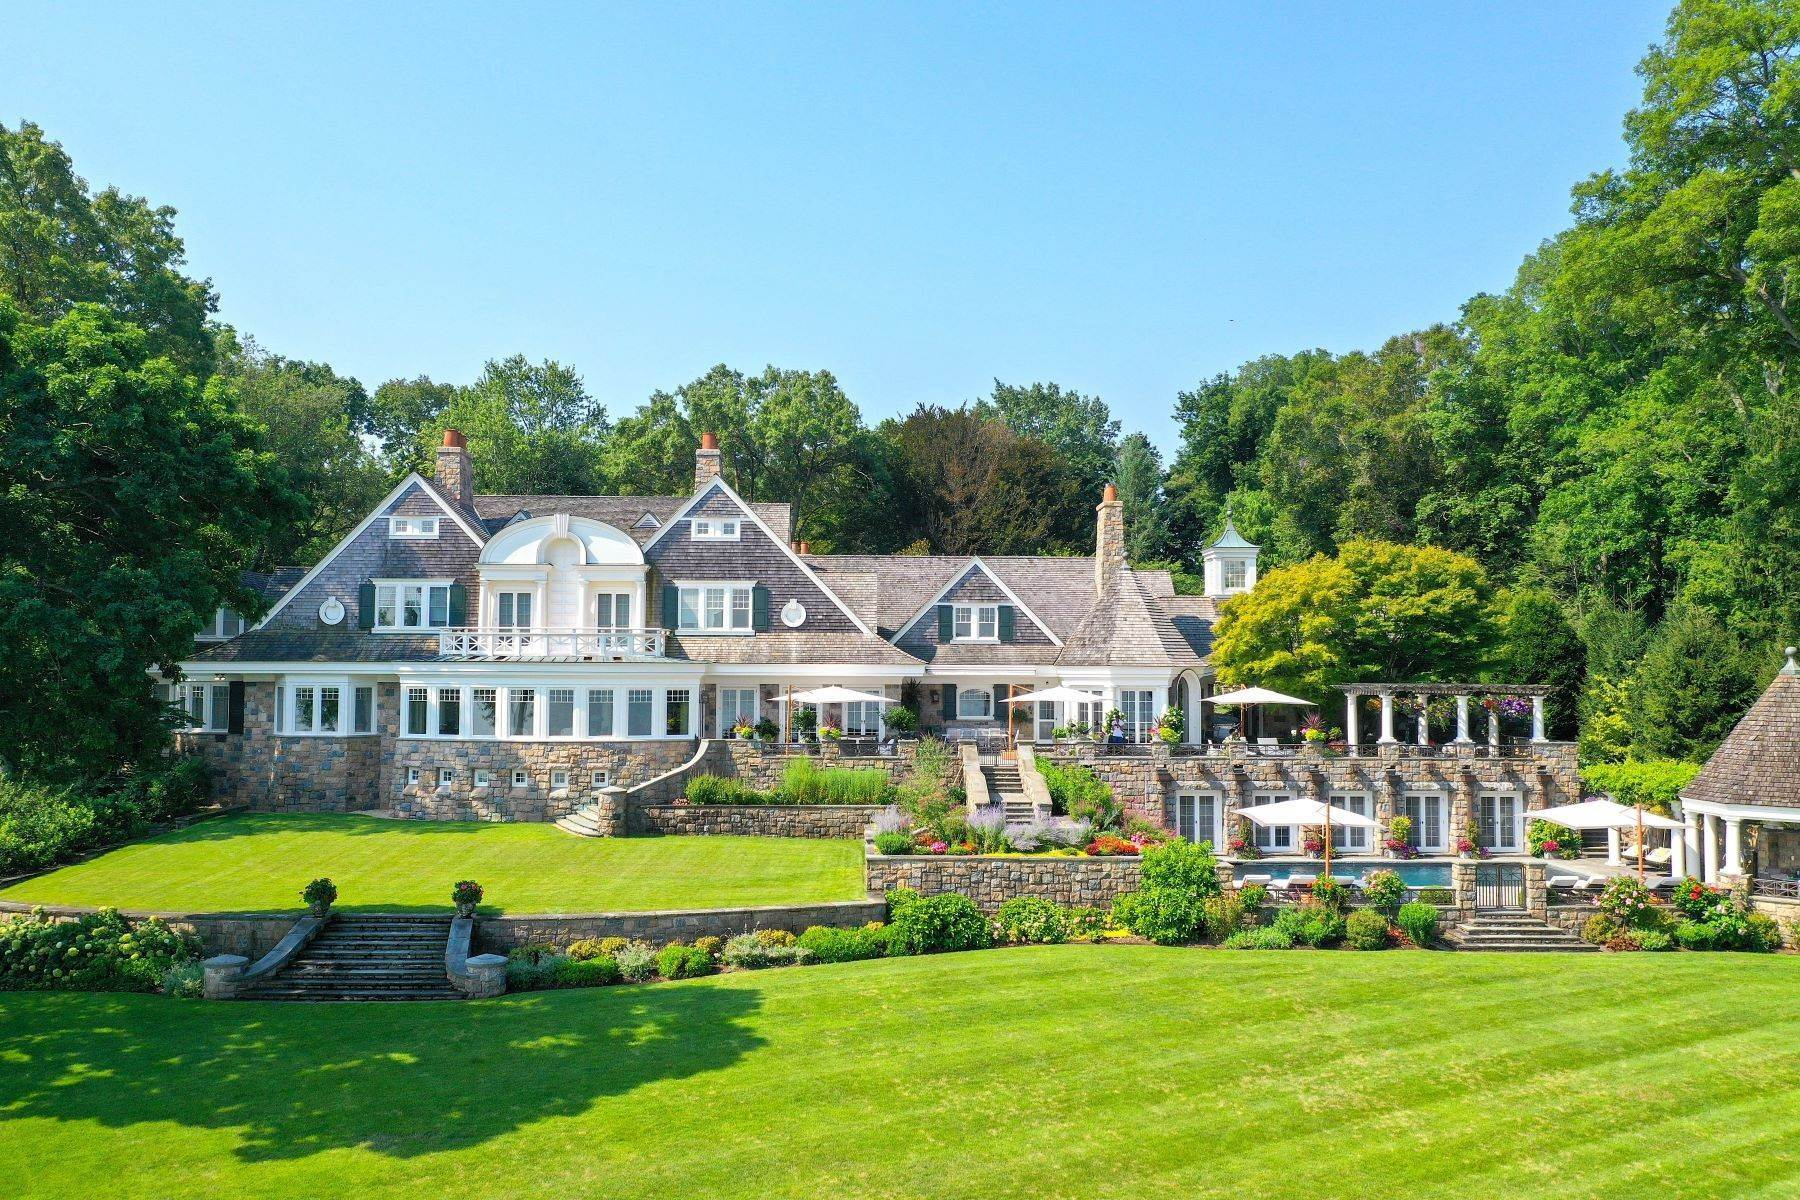 Single Family Homes for Sale at Great Neck 1 Swan Landing, Great Neck, New York 11024 United States